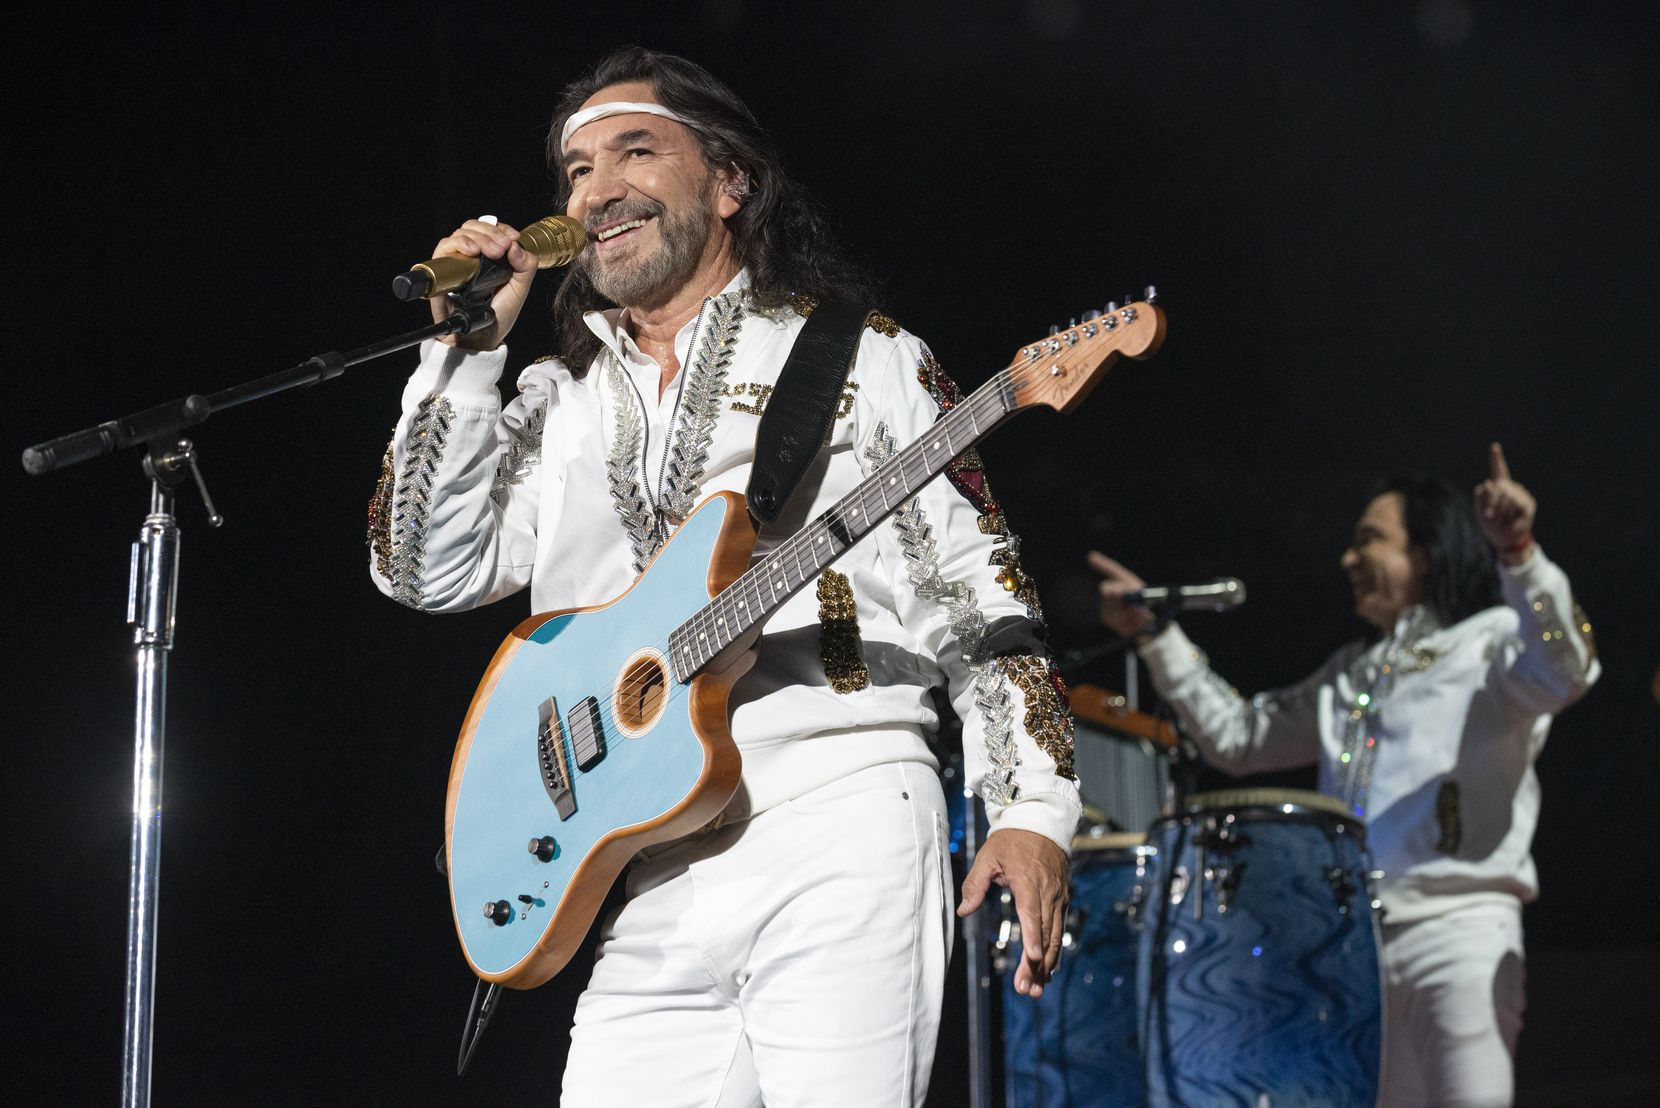 The legendary Mexican group Los Bukis performed in concert at the AT&T Stadium in Arlington on Wednesday, September 15, 2021.